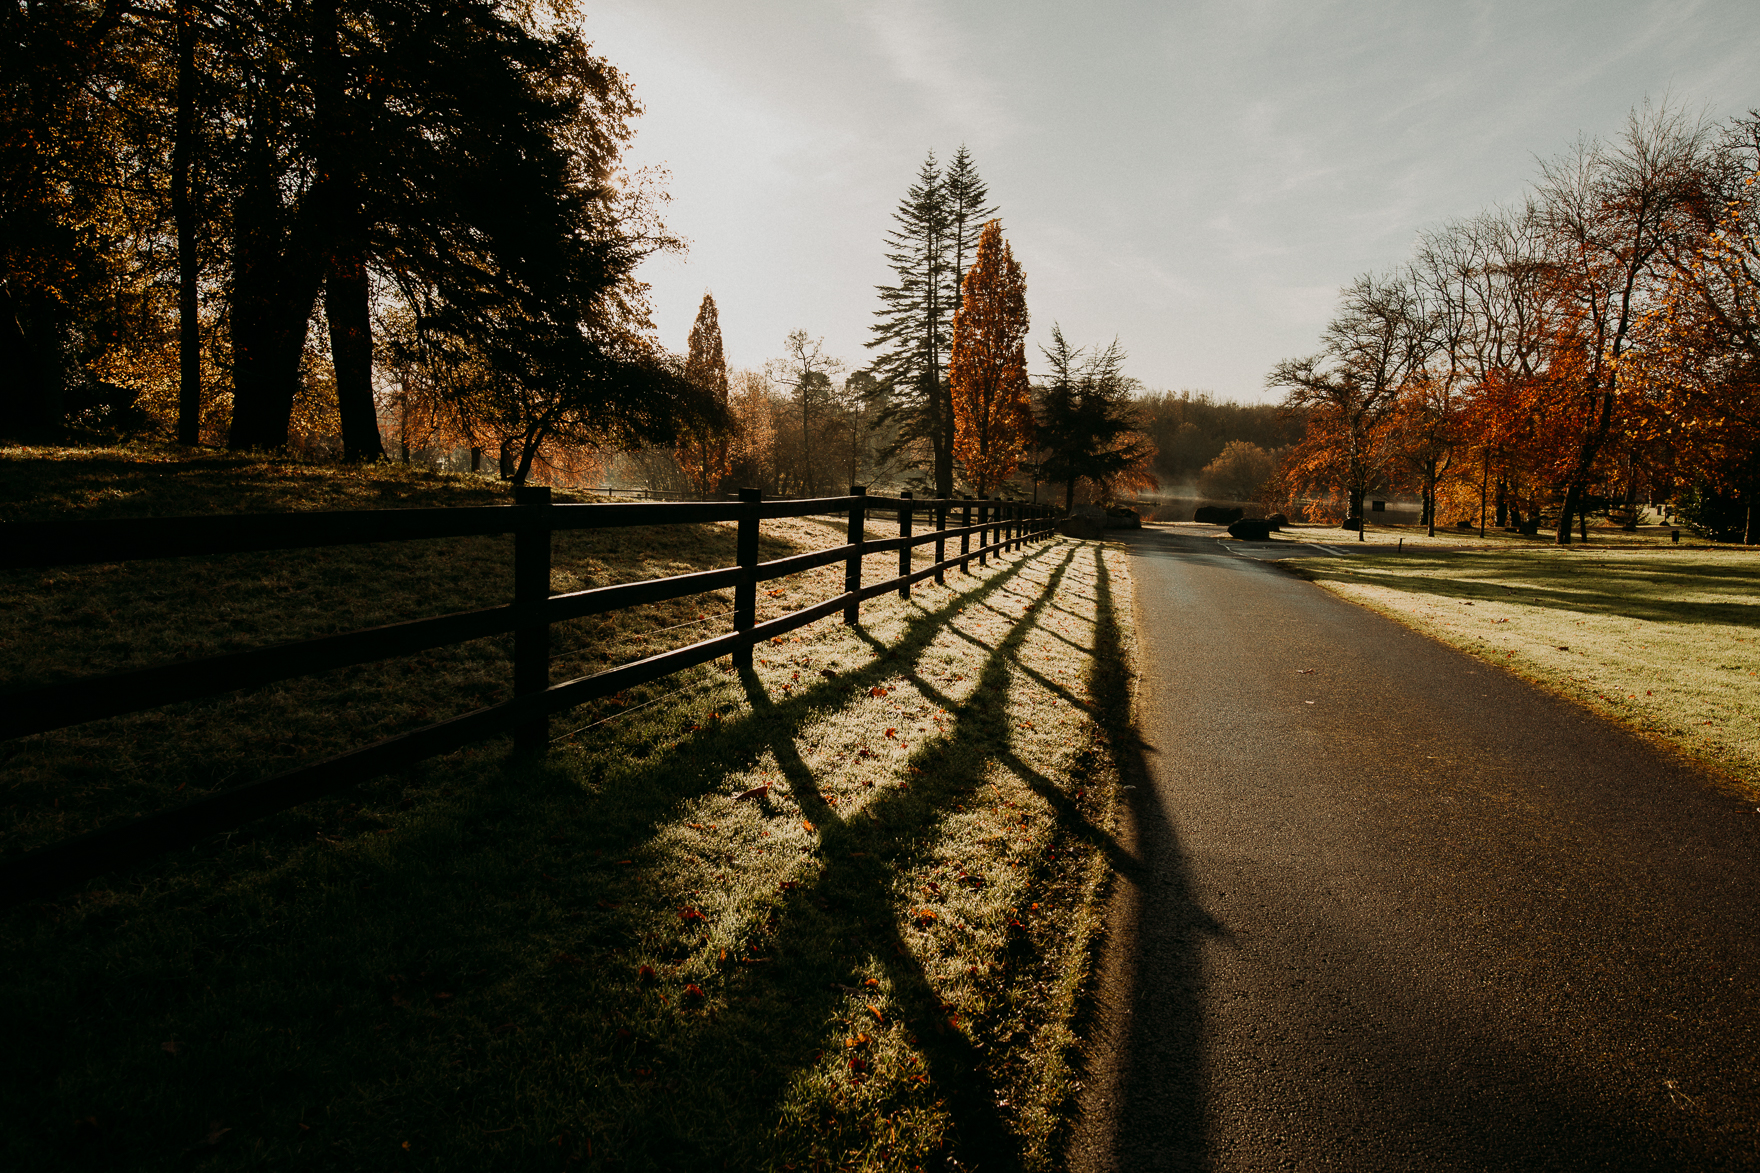 A path with trees on the side of a fence